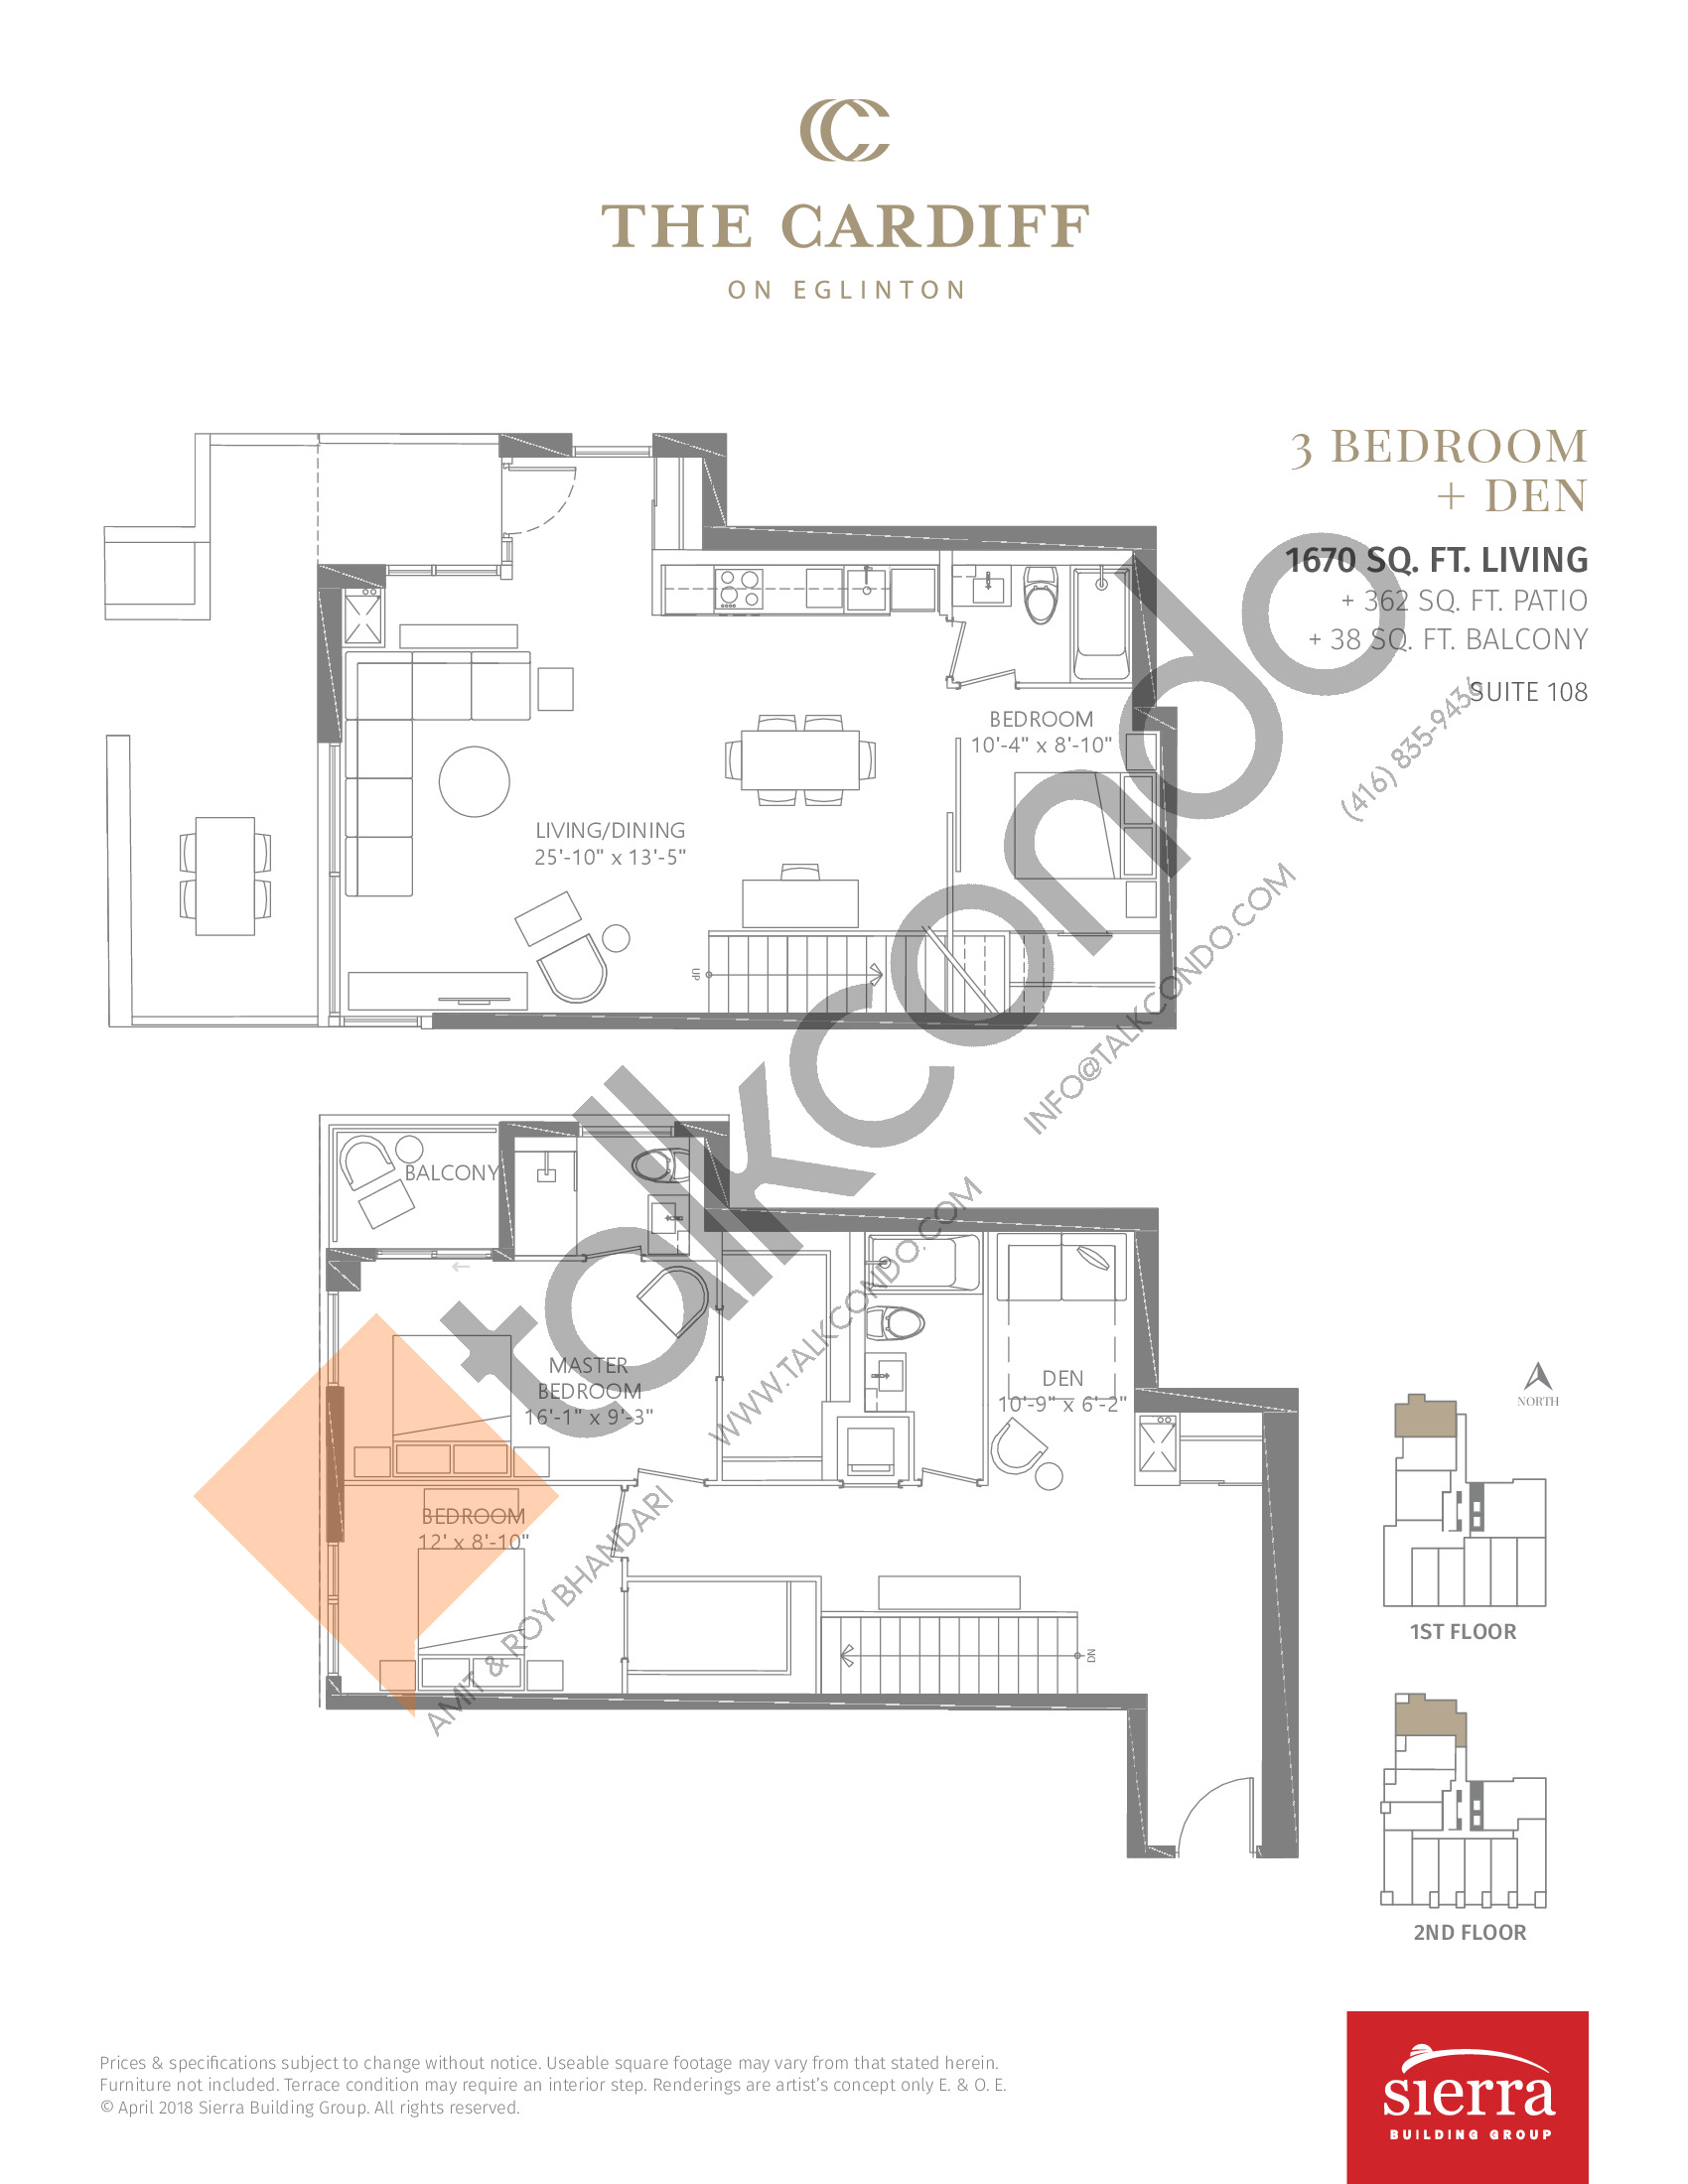 Suite 108 Floor Plan at The Cardiff Condos on Eglinton - 1670 sq.ft